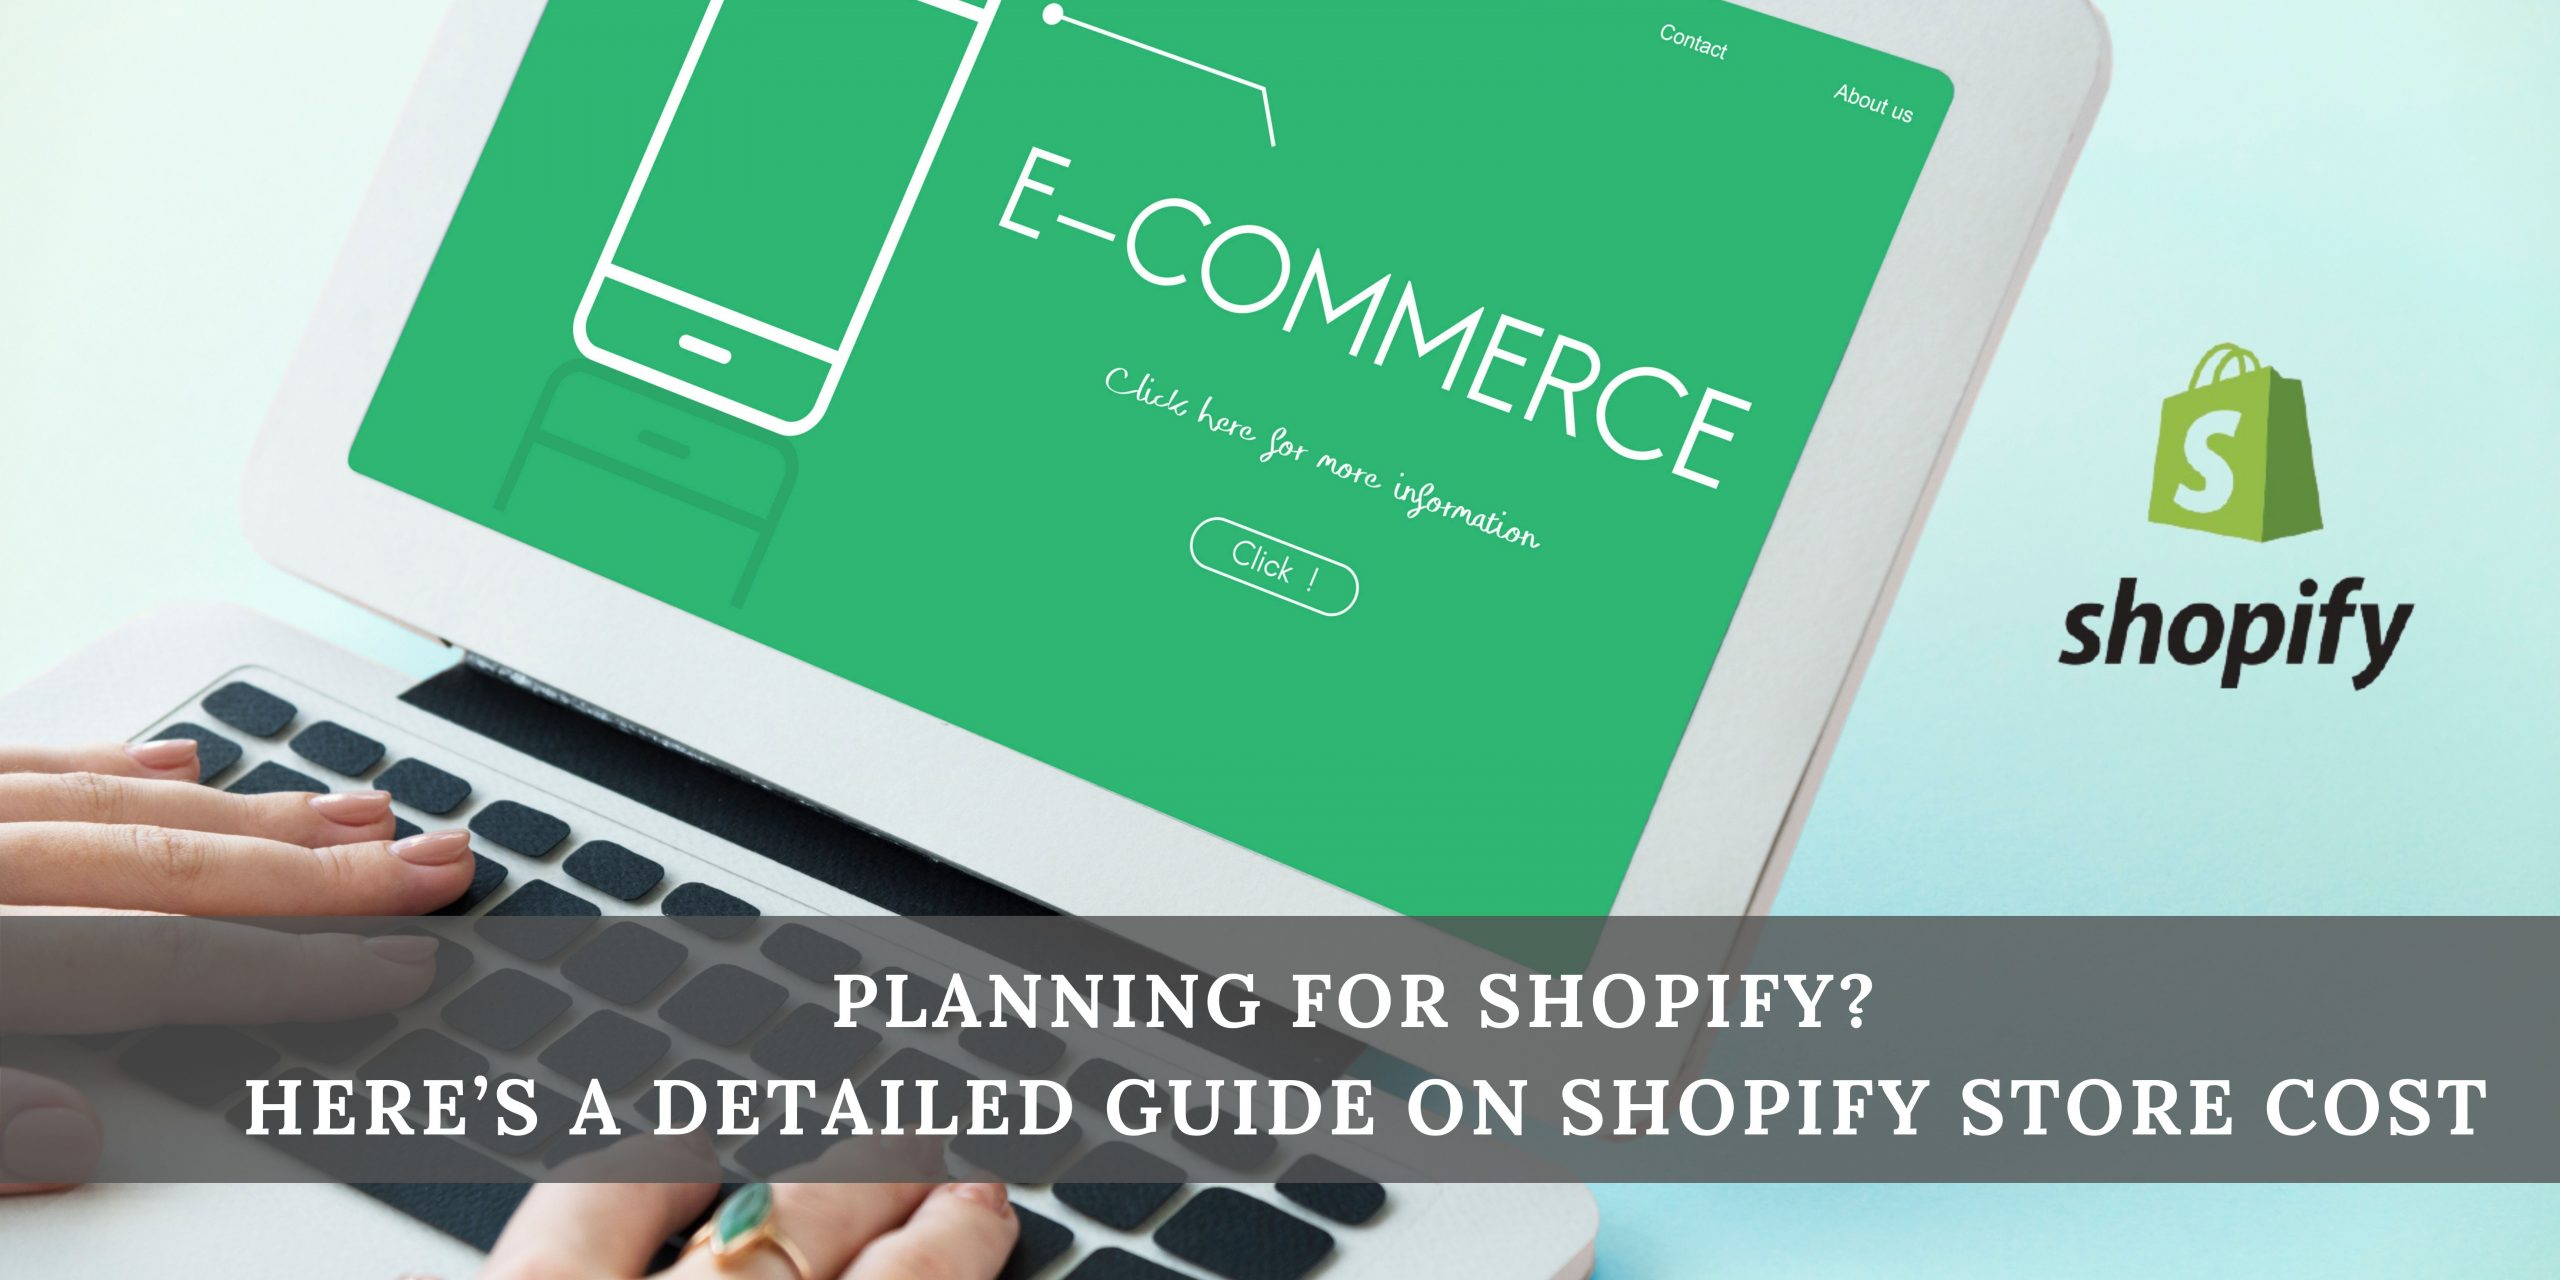 Planning for Shopify Here's a detailed guide on Shopify store cost